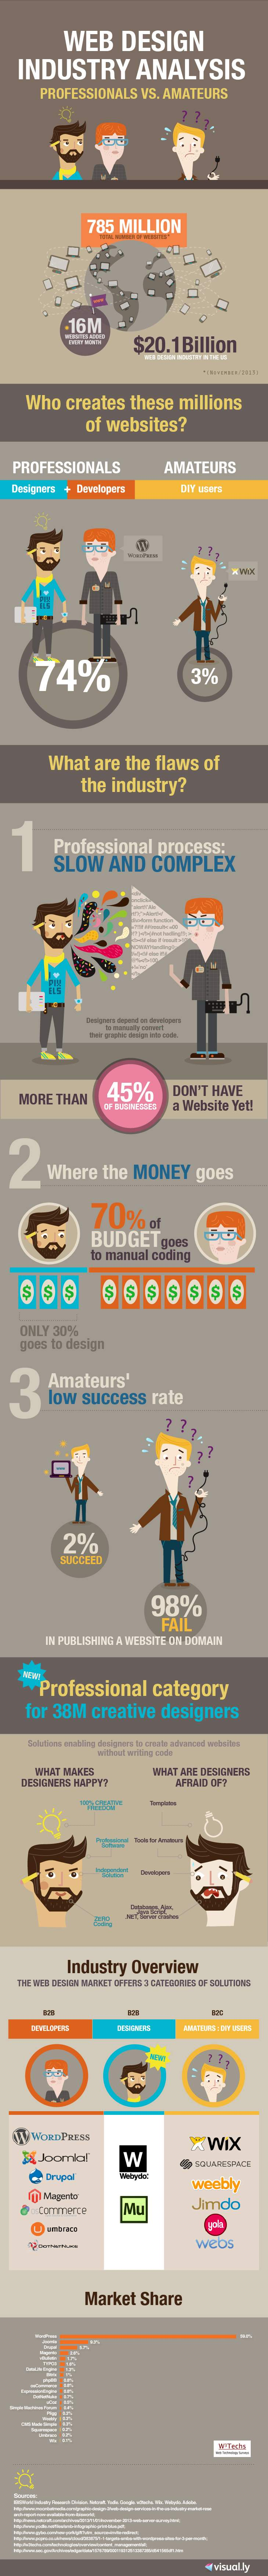 Infographic Webdesign industrie analyse